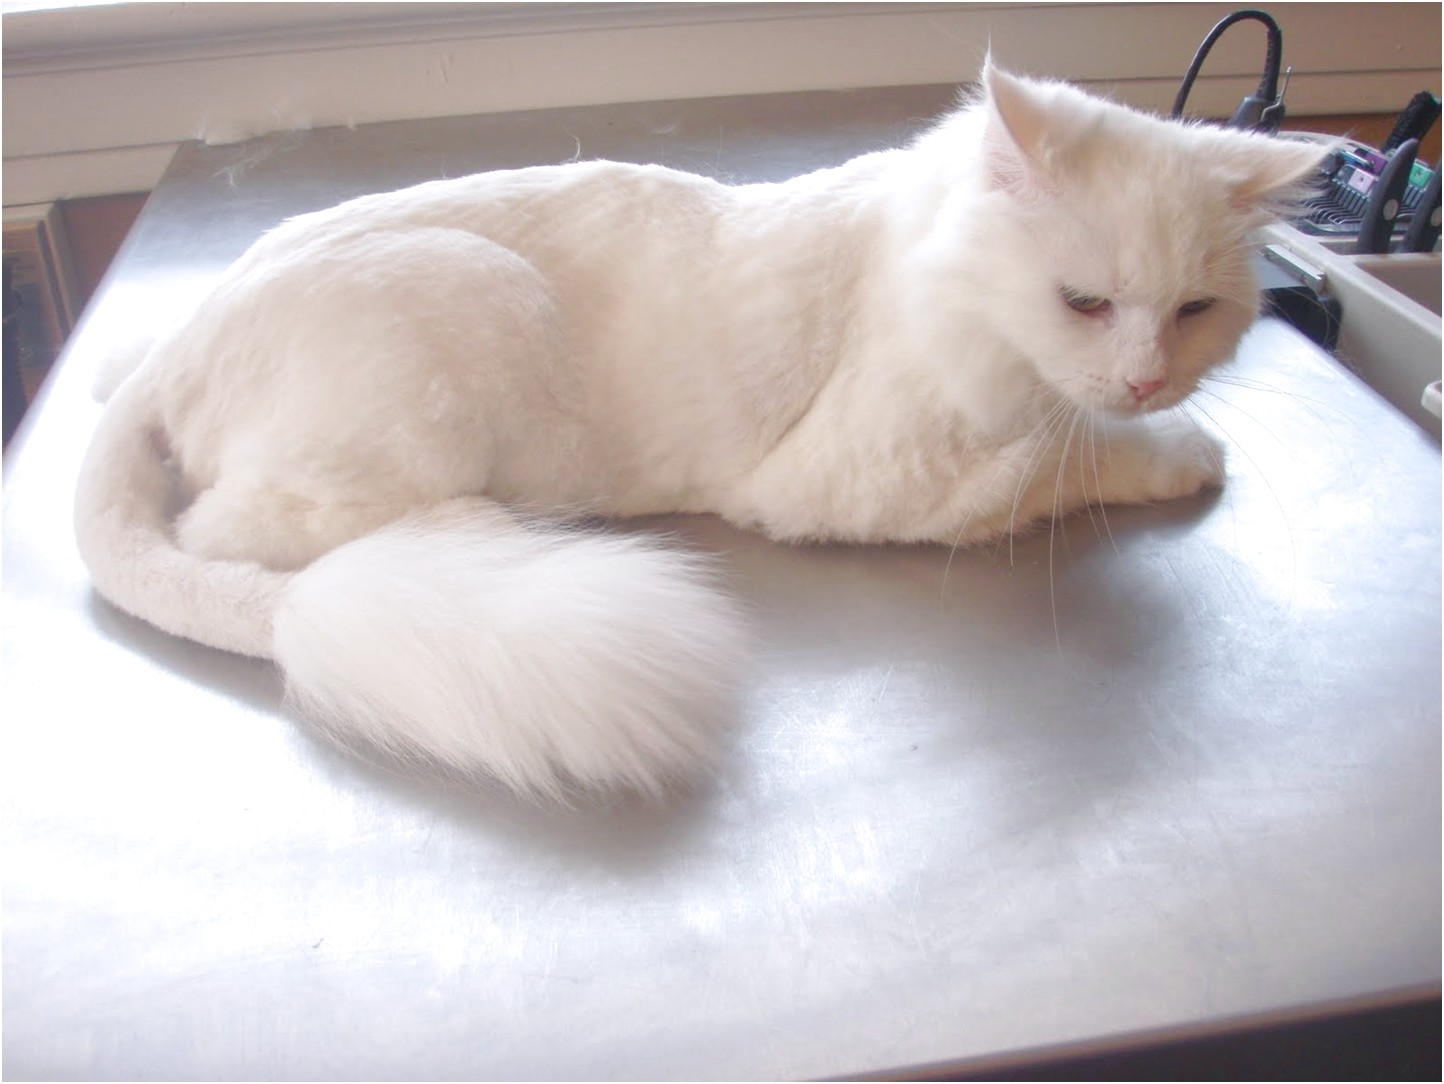 mobile pet grooming near me cats